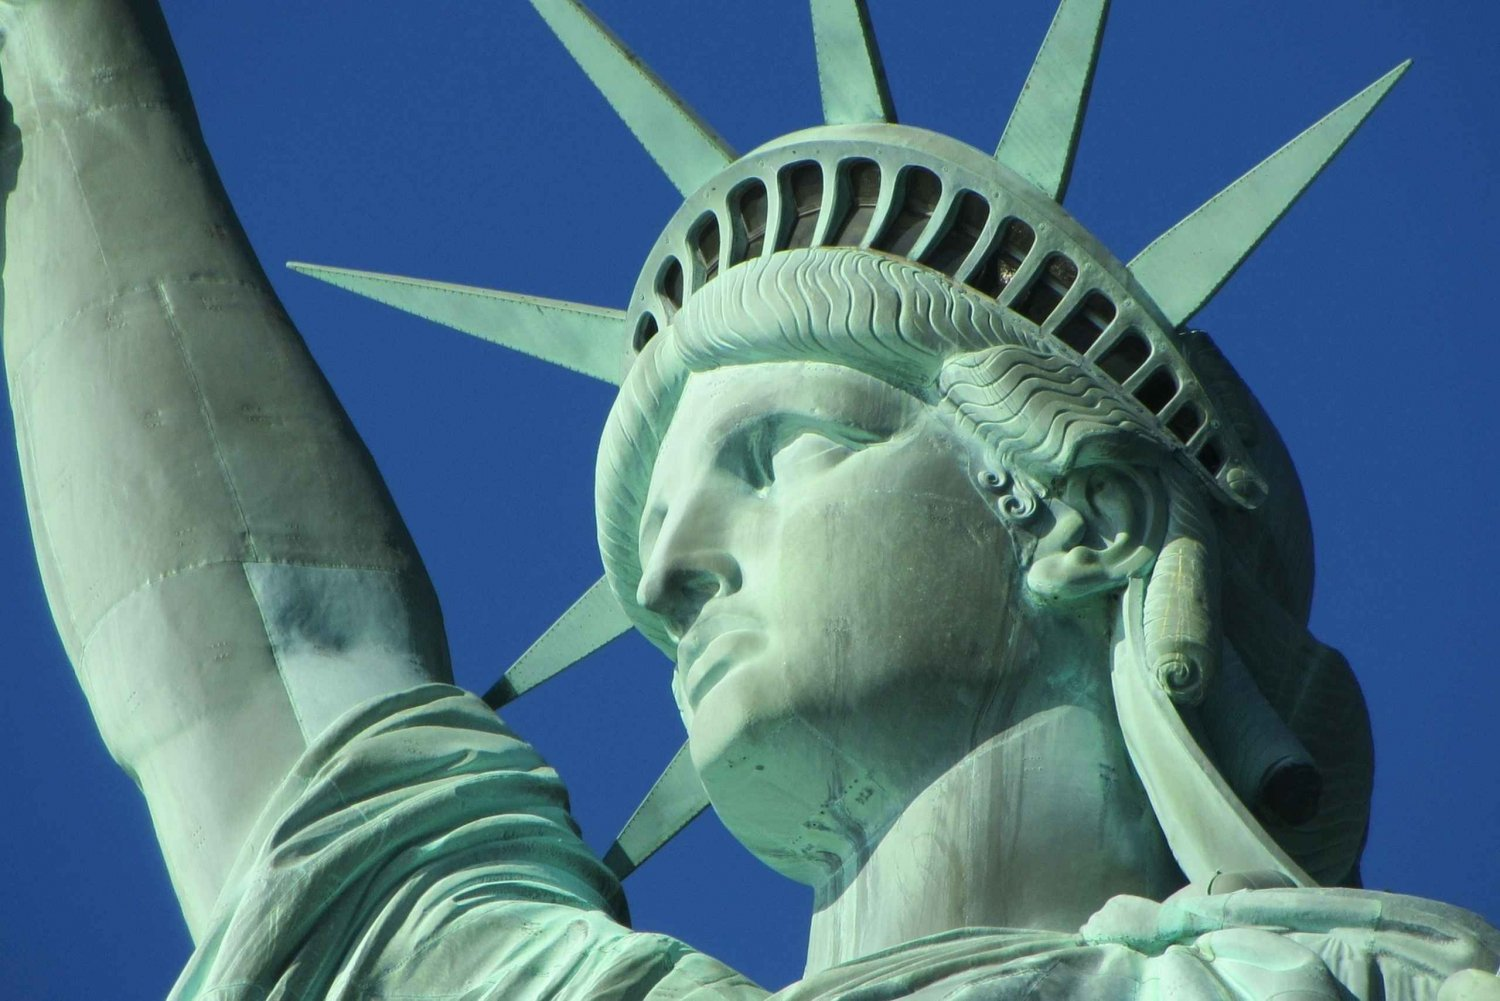 Statue of Liberty Cruise and Attractions Options